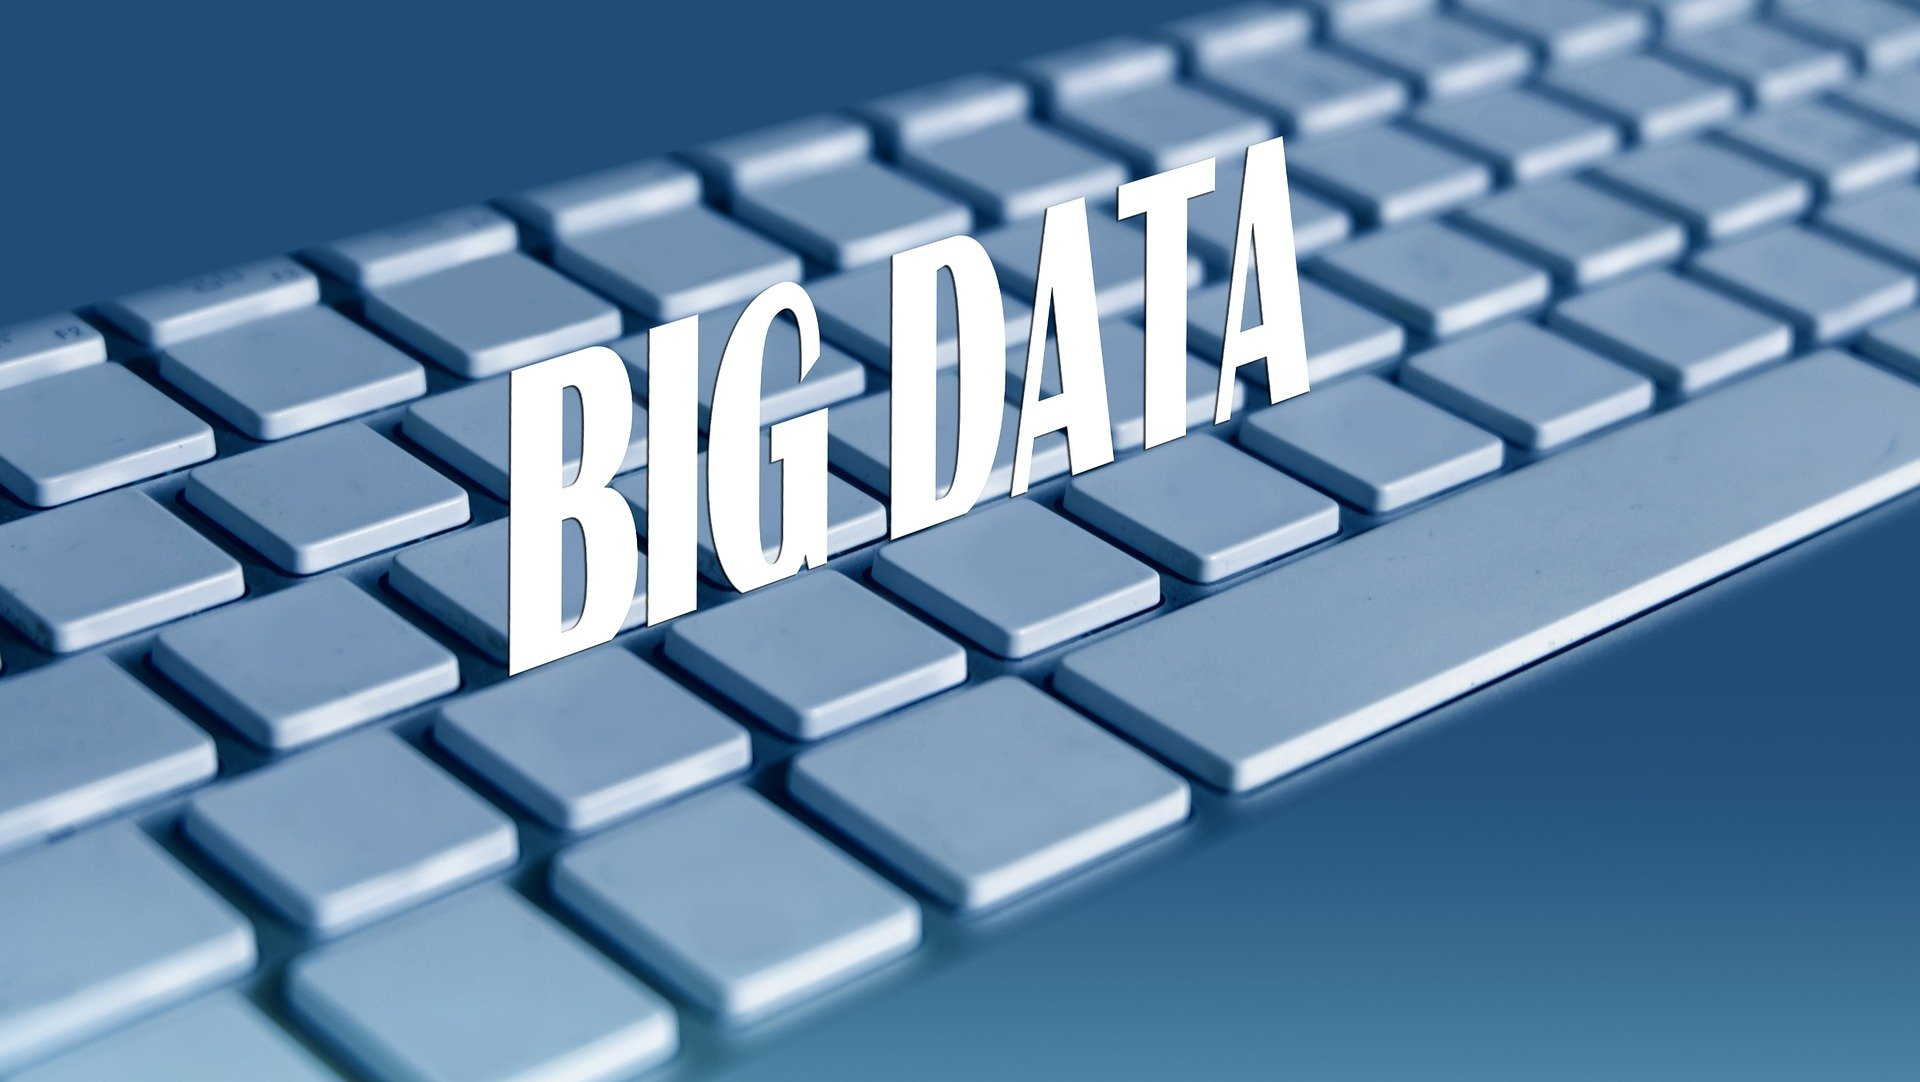 What You Need to Setting Up a Proper Database for Big Data